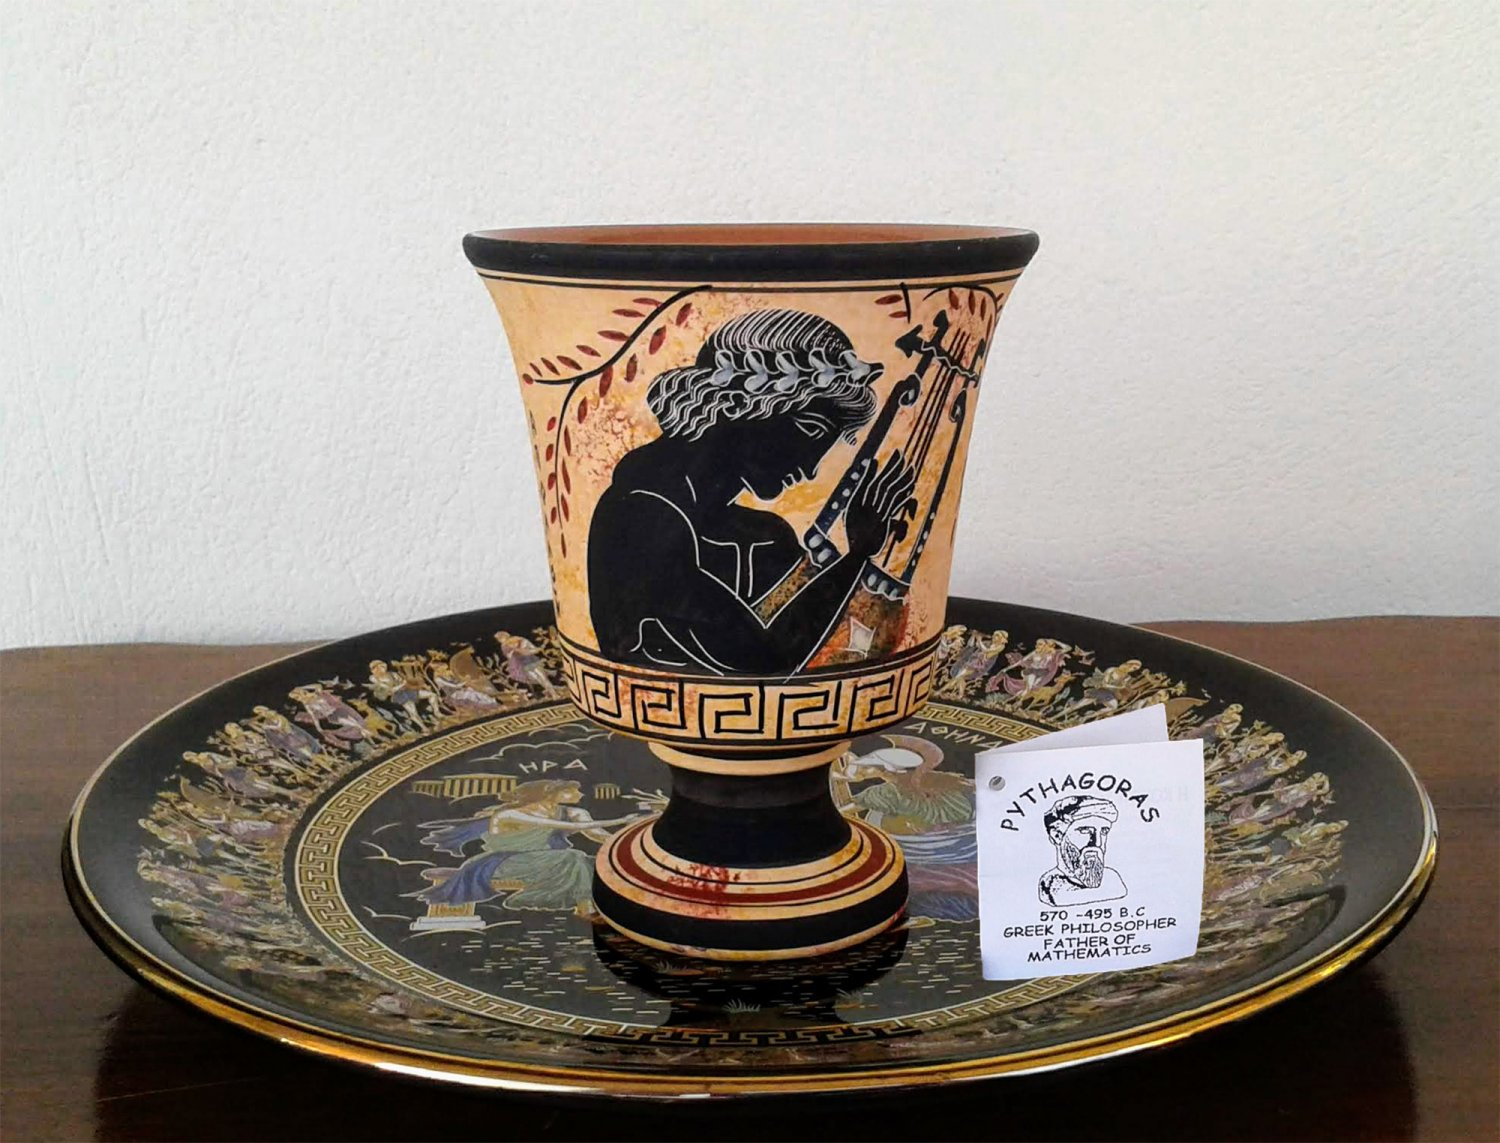 Pythagoras cup, Fair cup, Museum Copy, engraved in hand, depicts God Apollo, stoneware, pottery